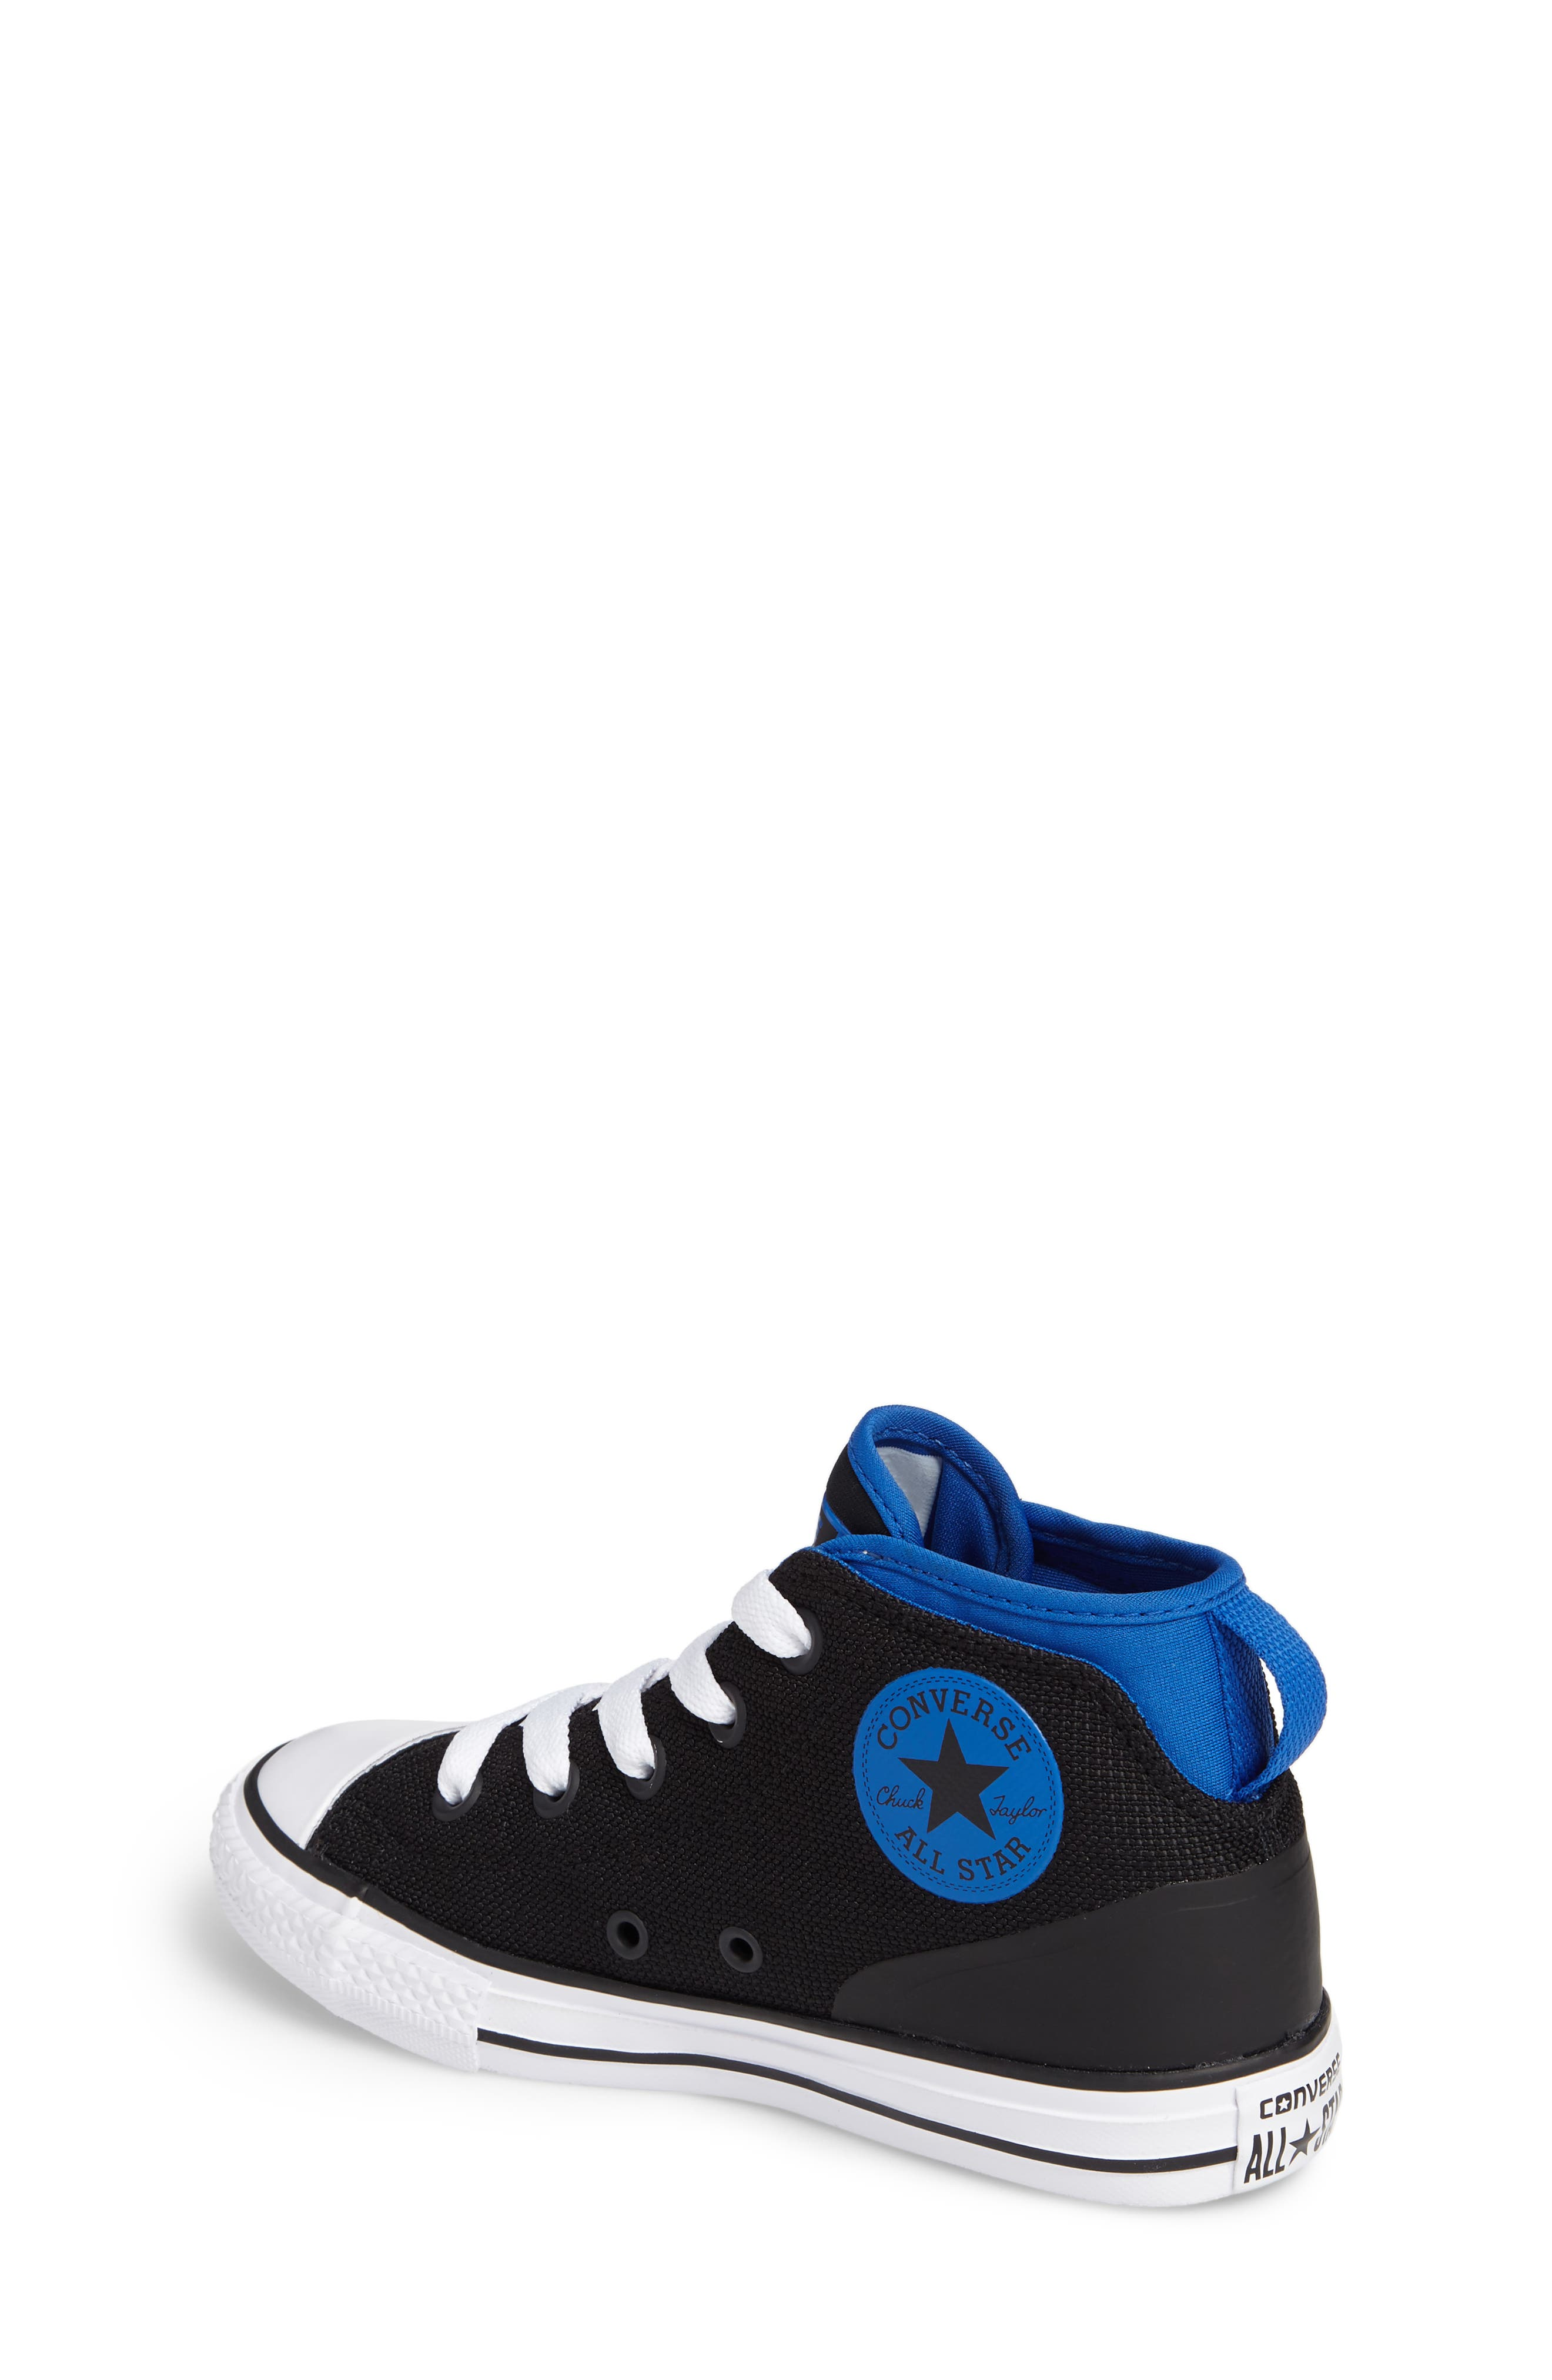 Chuck Taylor<sup>®</sup> All Star<sup>®</sup> Syde Street High Top Sneaker,                             Alternate thumbnail 2, color,                             001